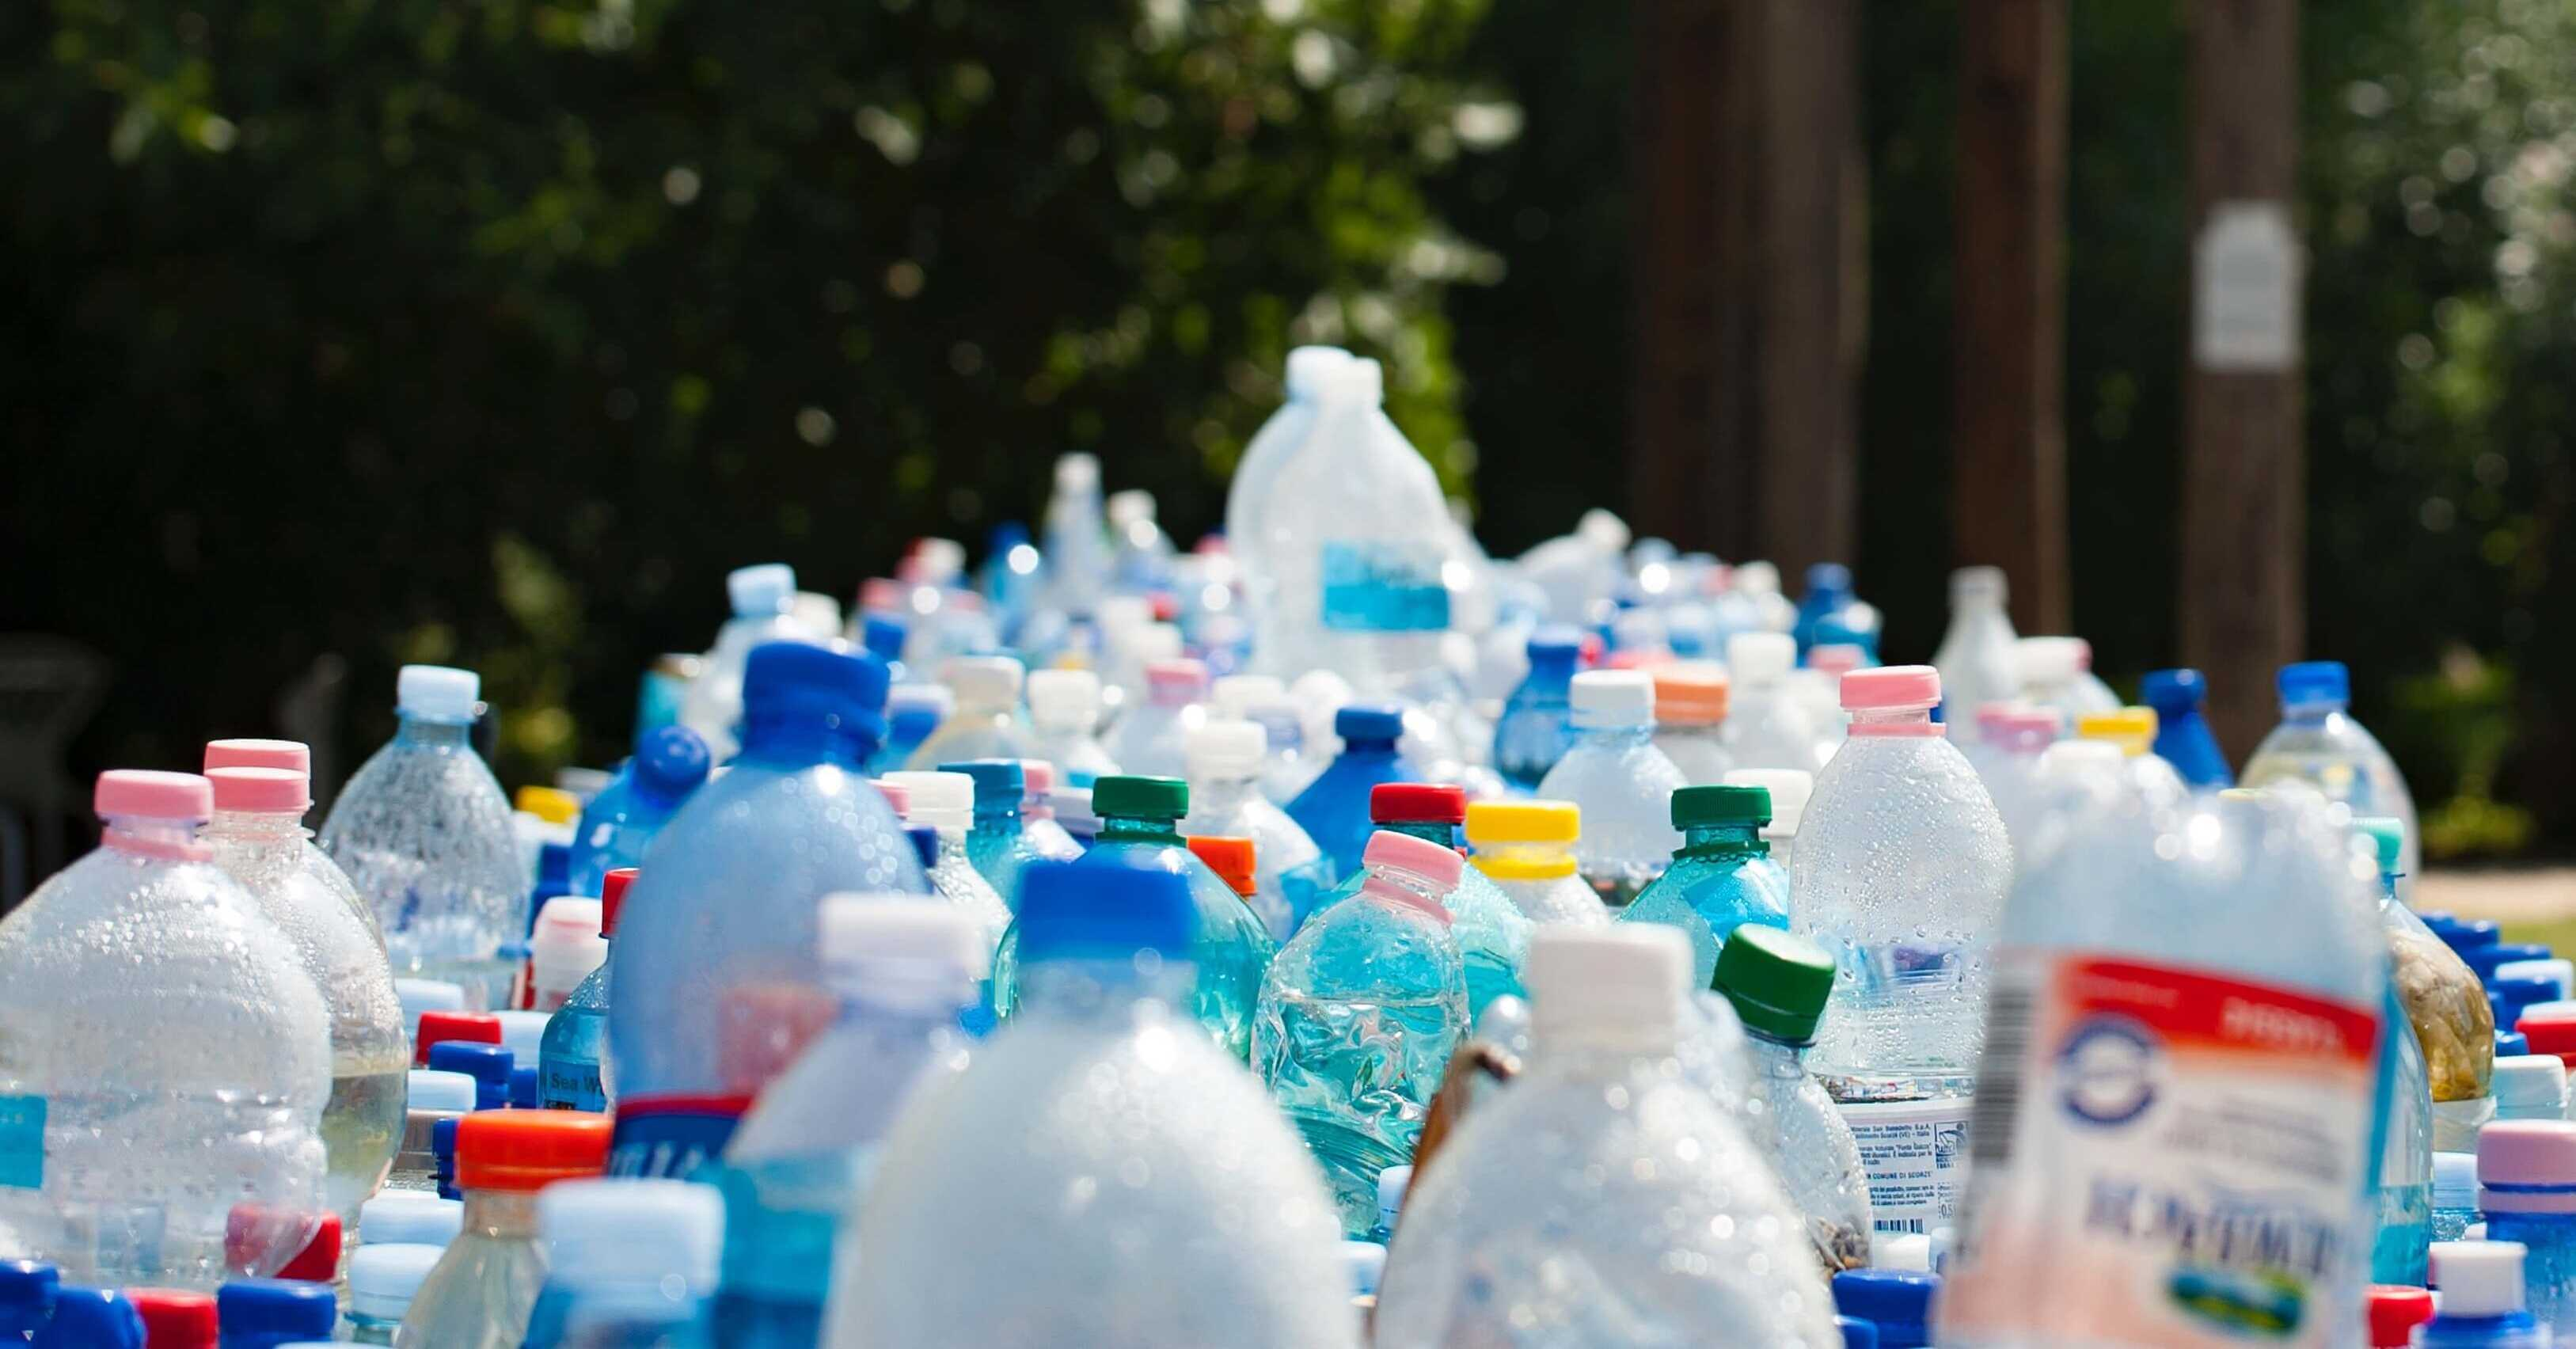 plastic bottle waste reduce maintenance costs